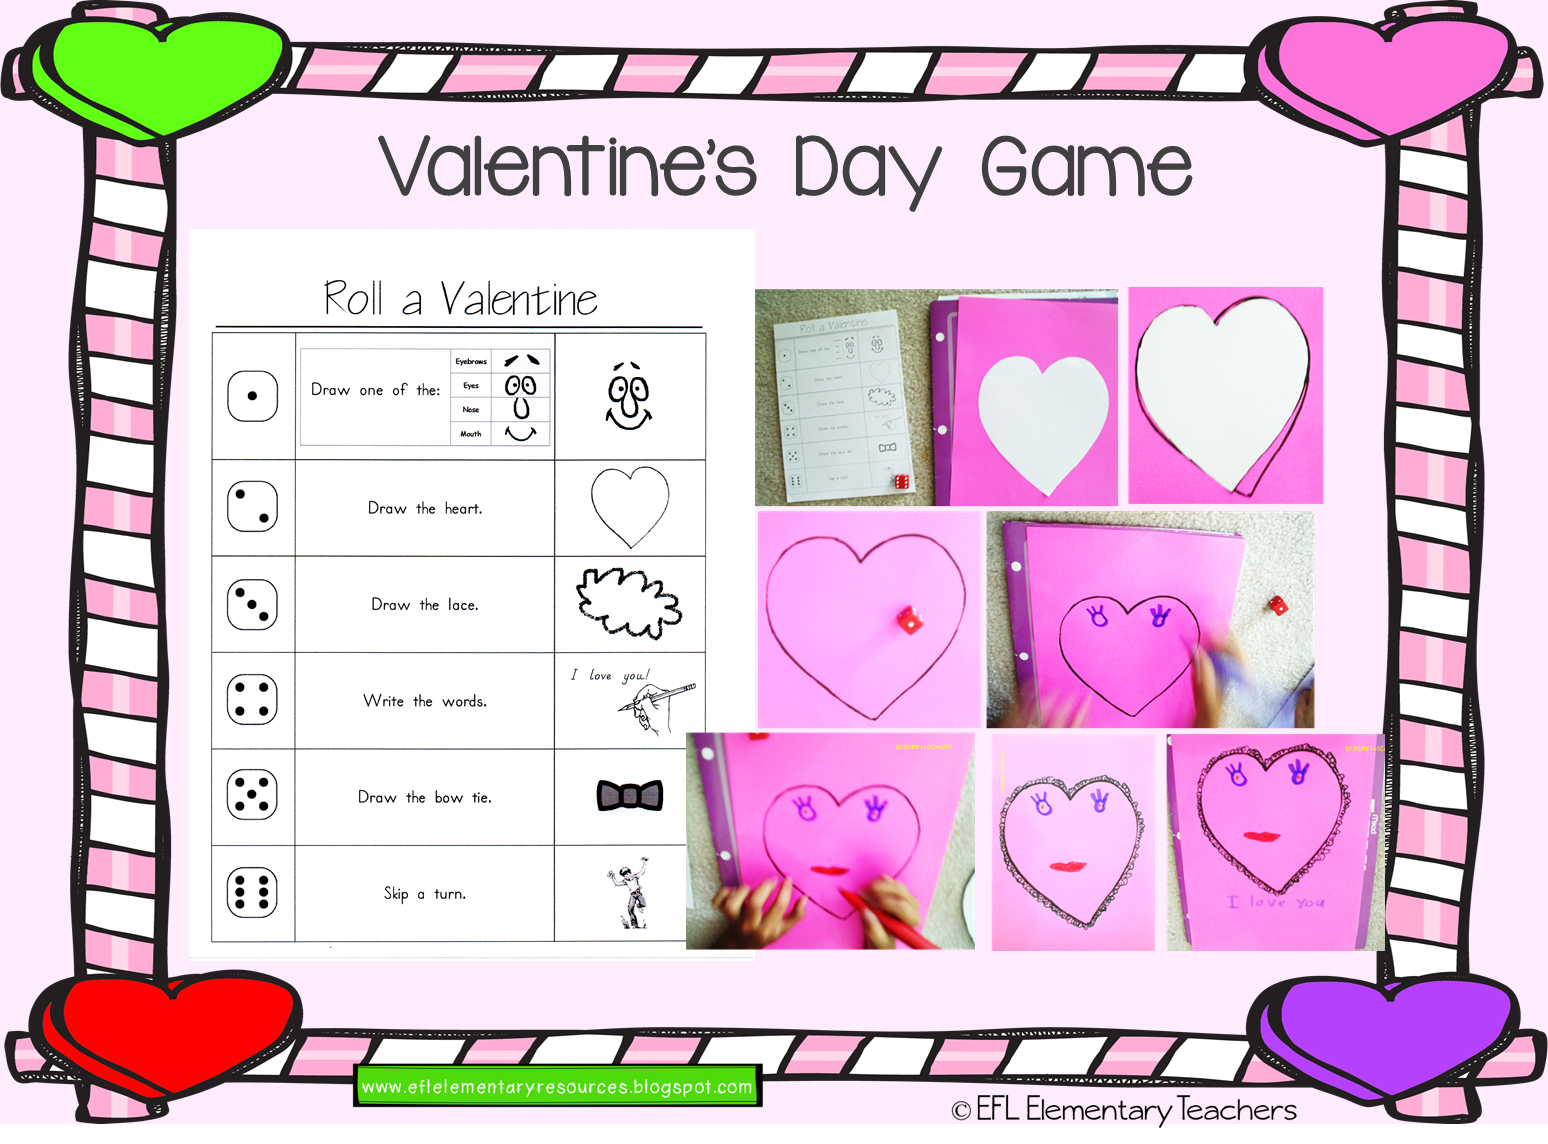 Efl Elementary Teachers Valentine S Day Ideas For